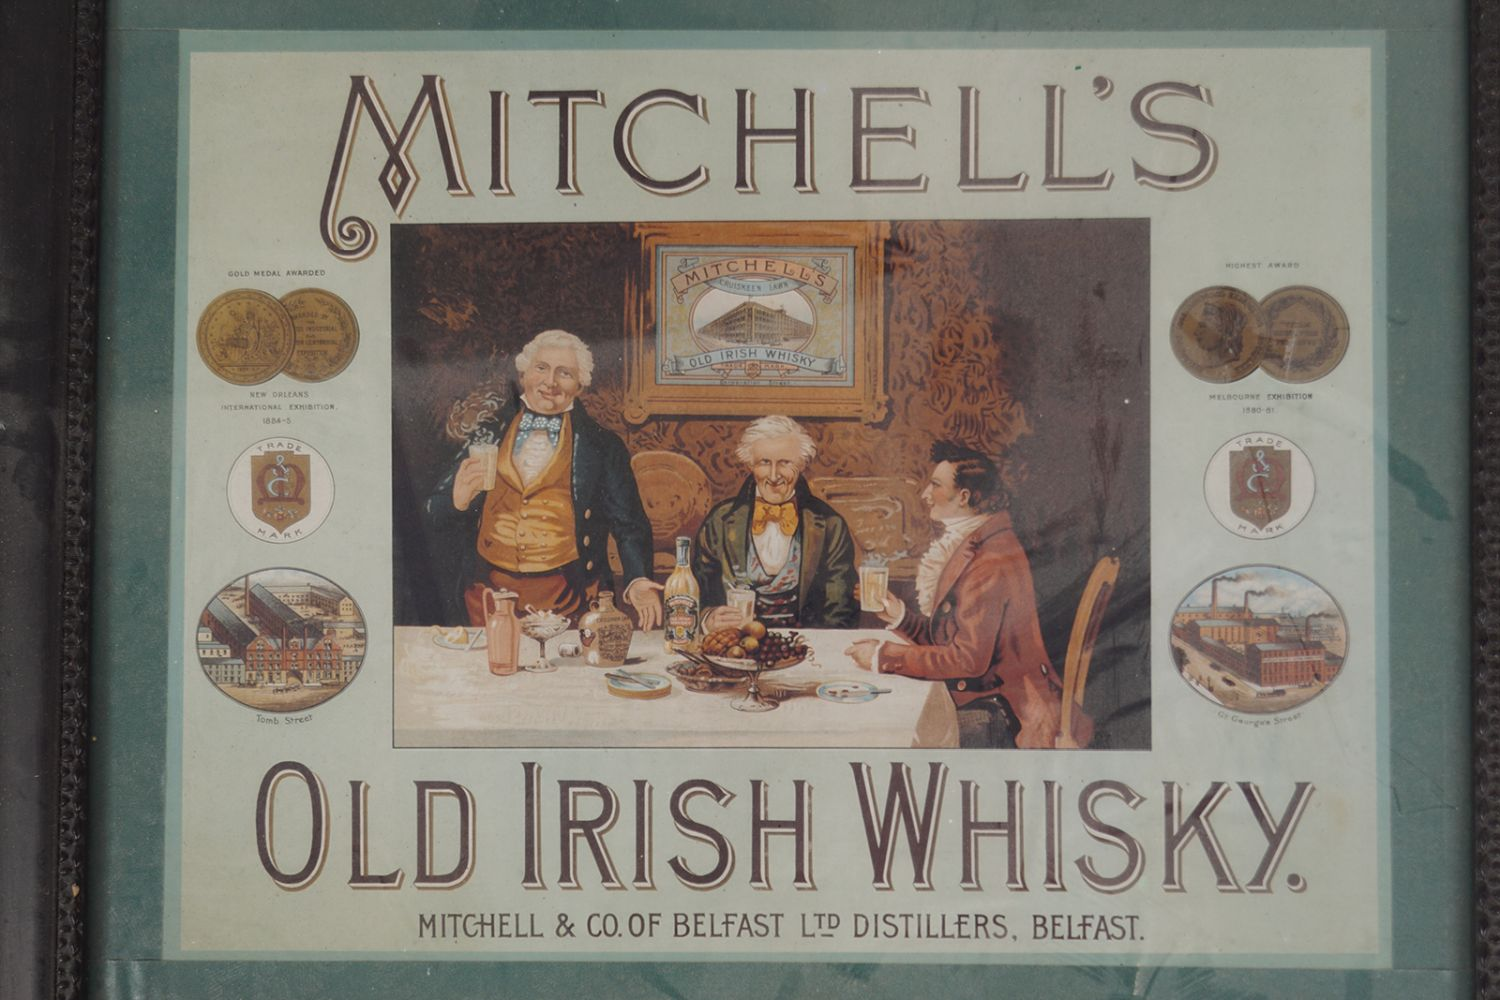 MITCHELL'S OLD IRISH WHISKY POSTER - Image 2 of 2